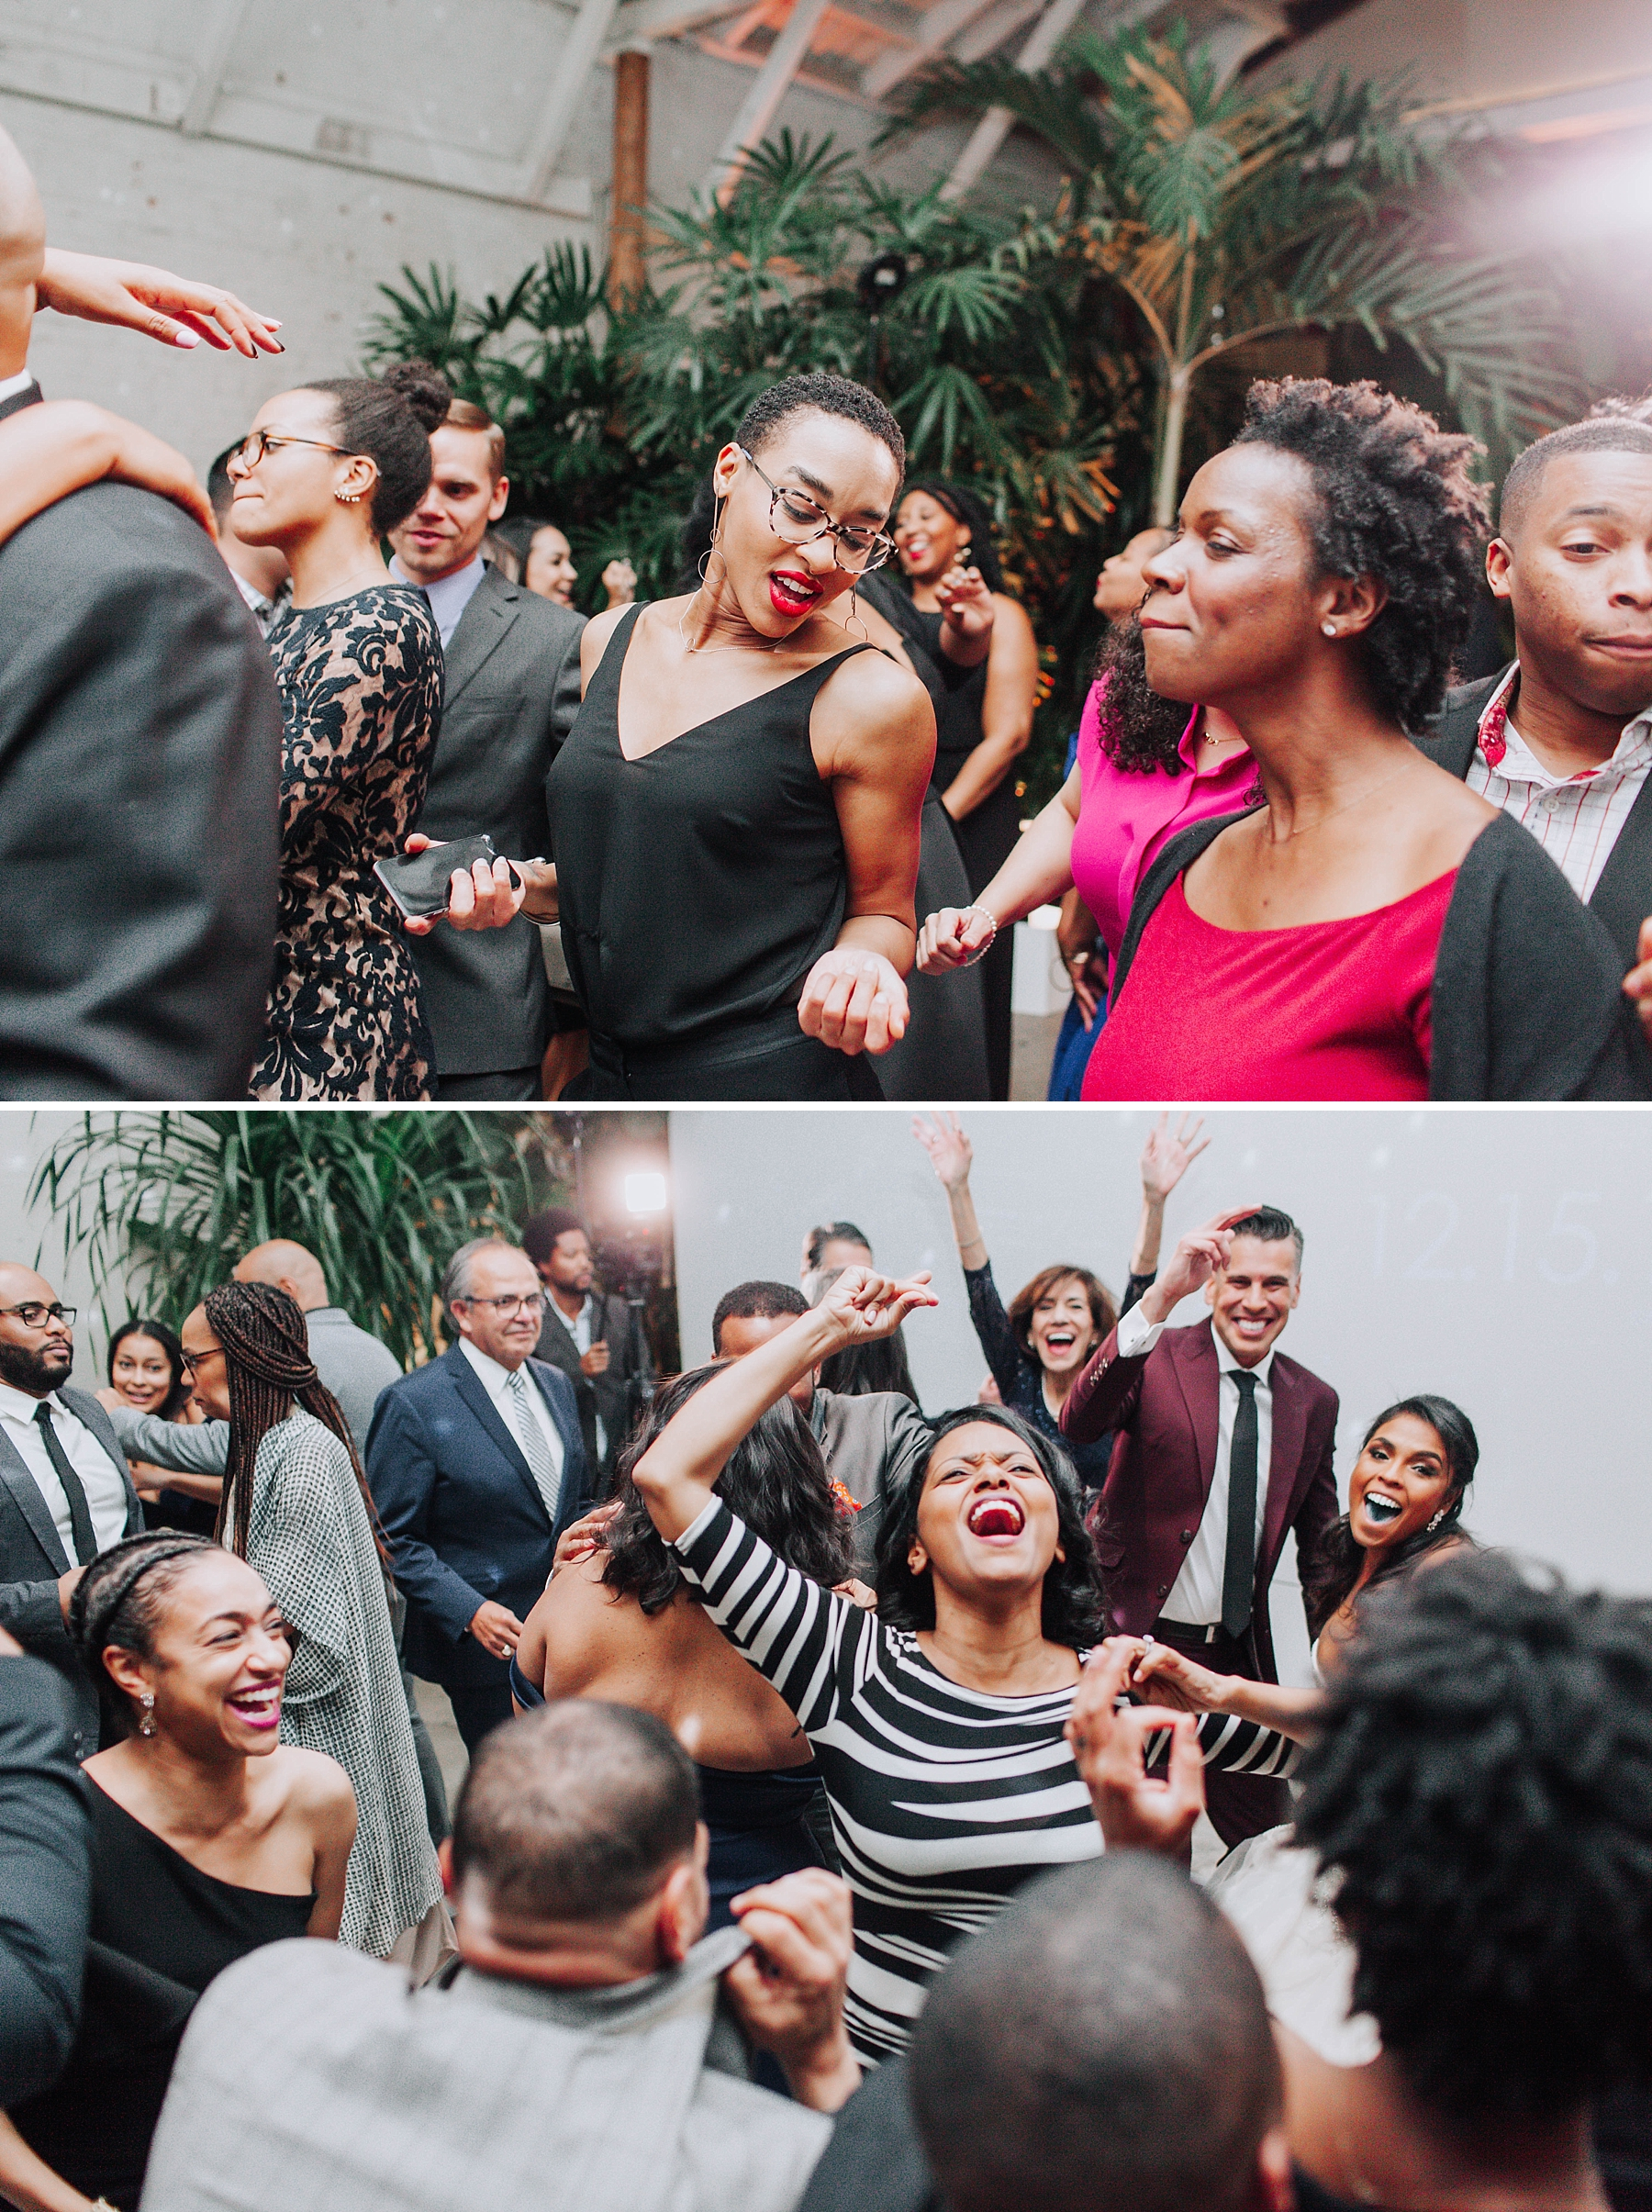 Millwick Downtown Los Angles Wedding, Los Angeles Wedding Photography